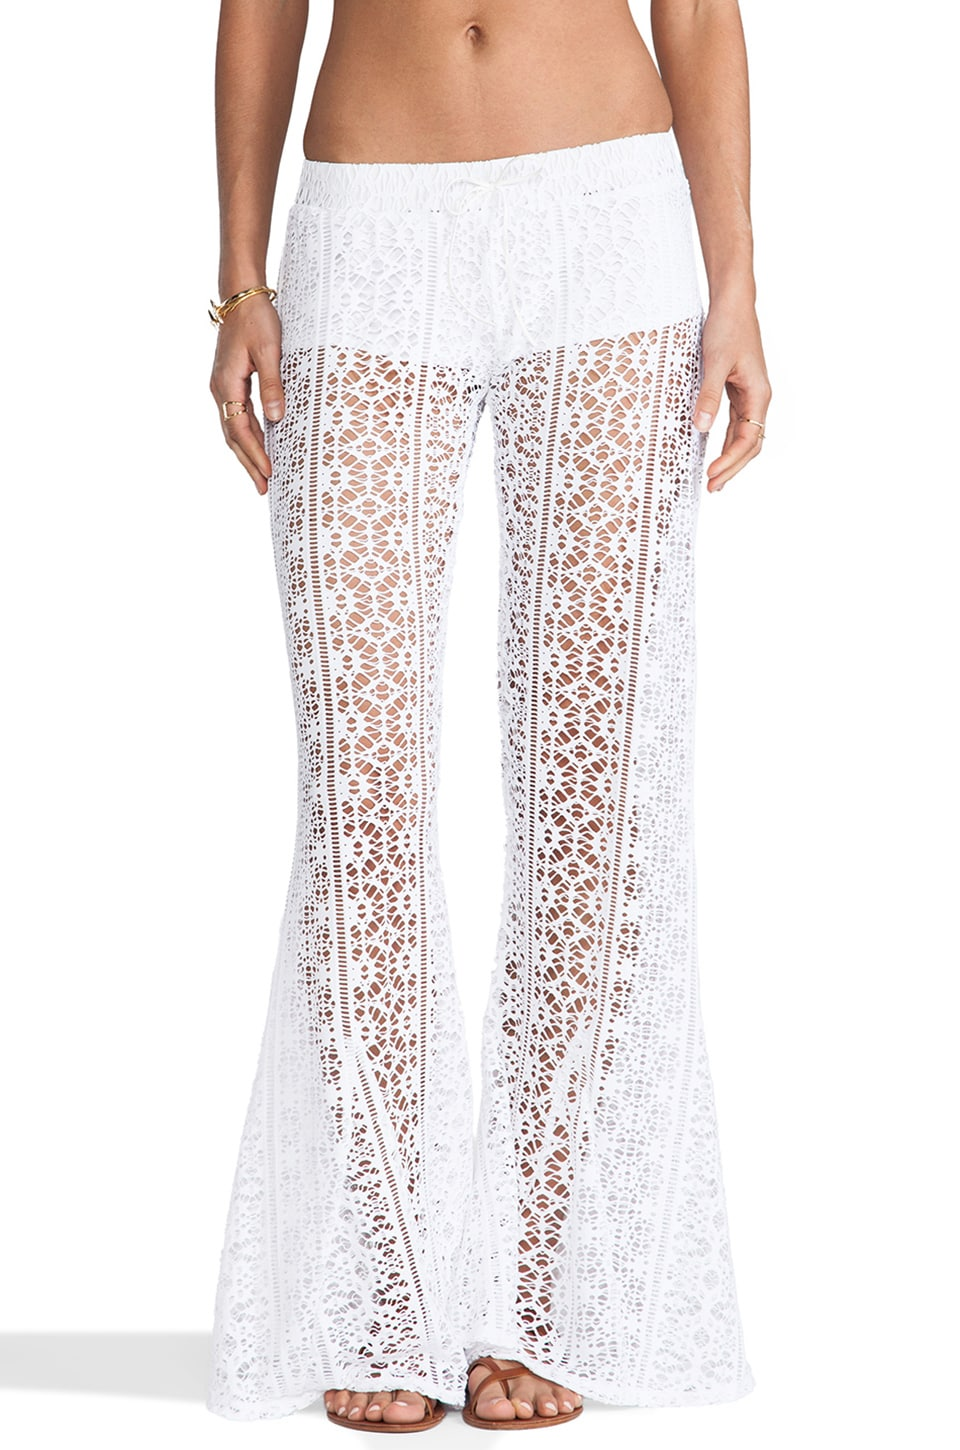 Bettinis Crochet Flare Pants in White Wash